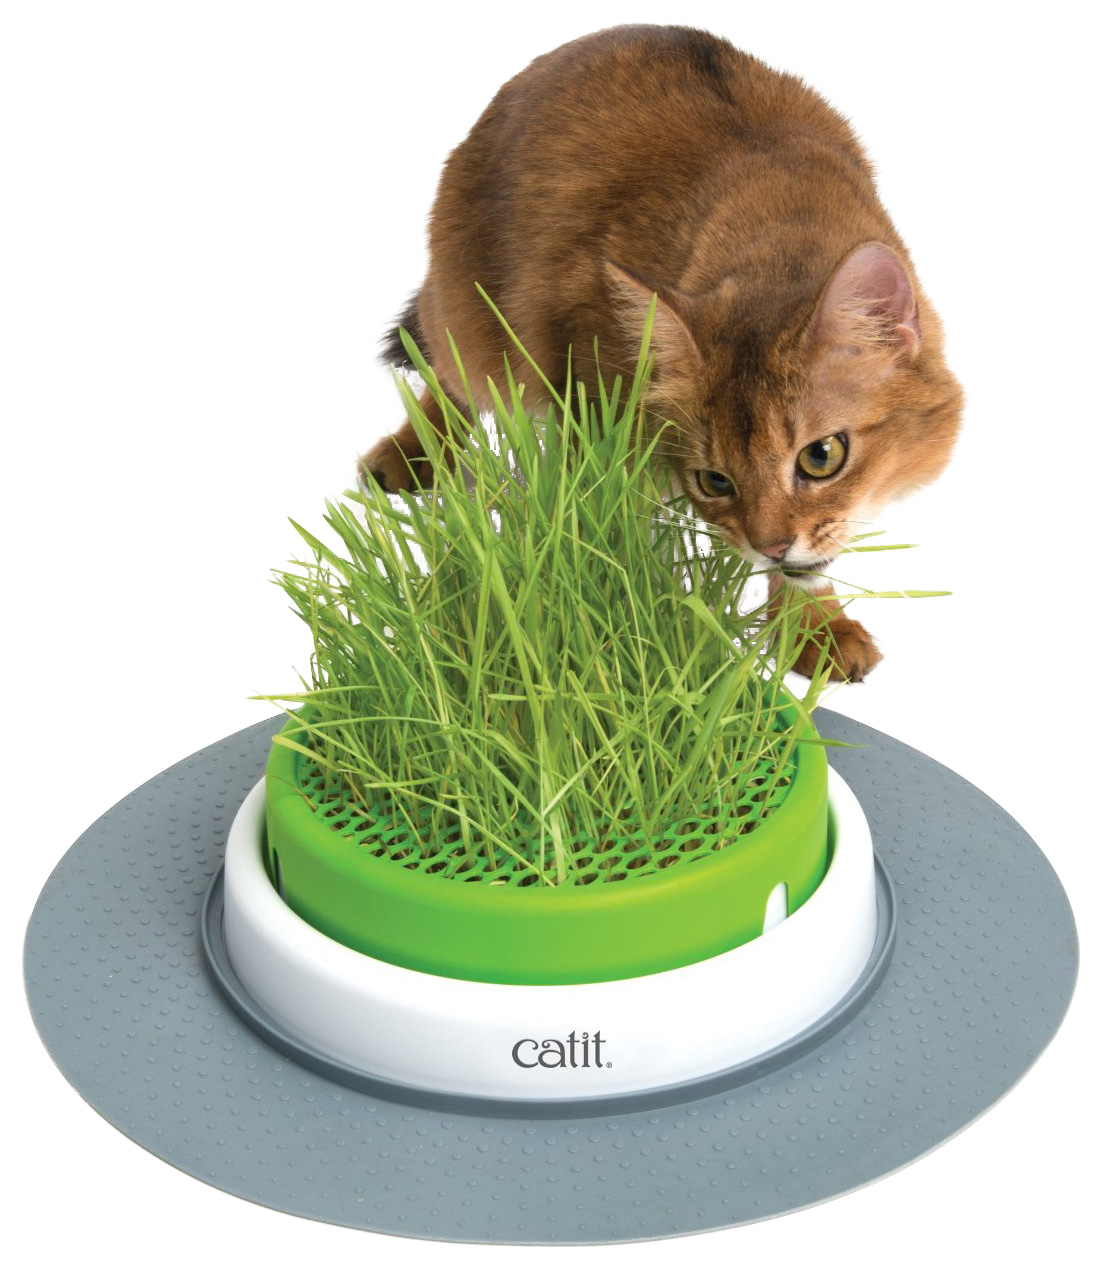 Cat It Catit Senses 2.0 Grass Planter